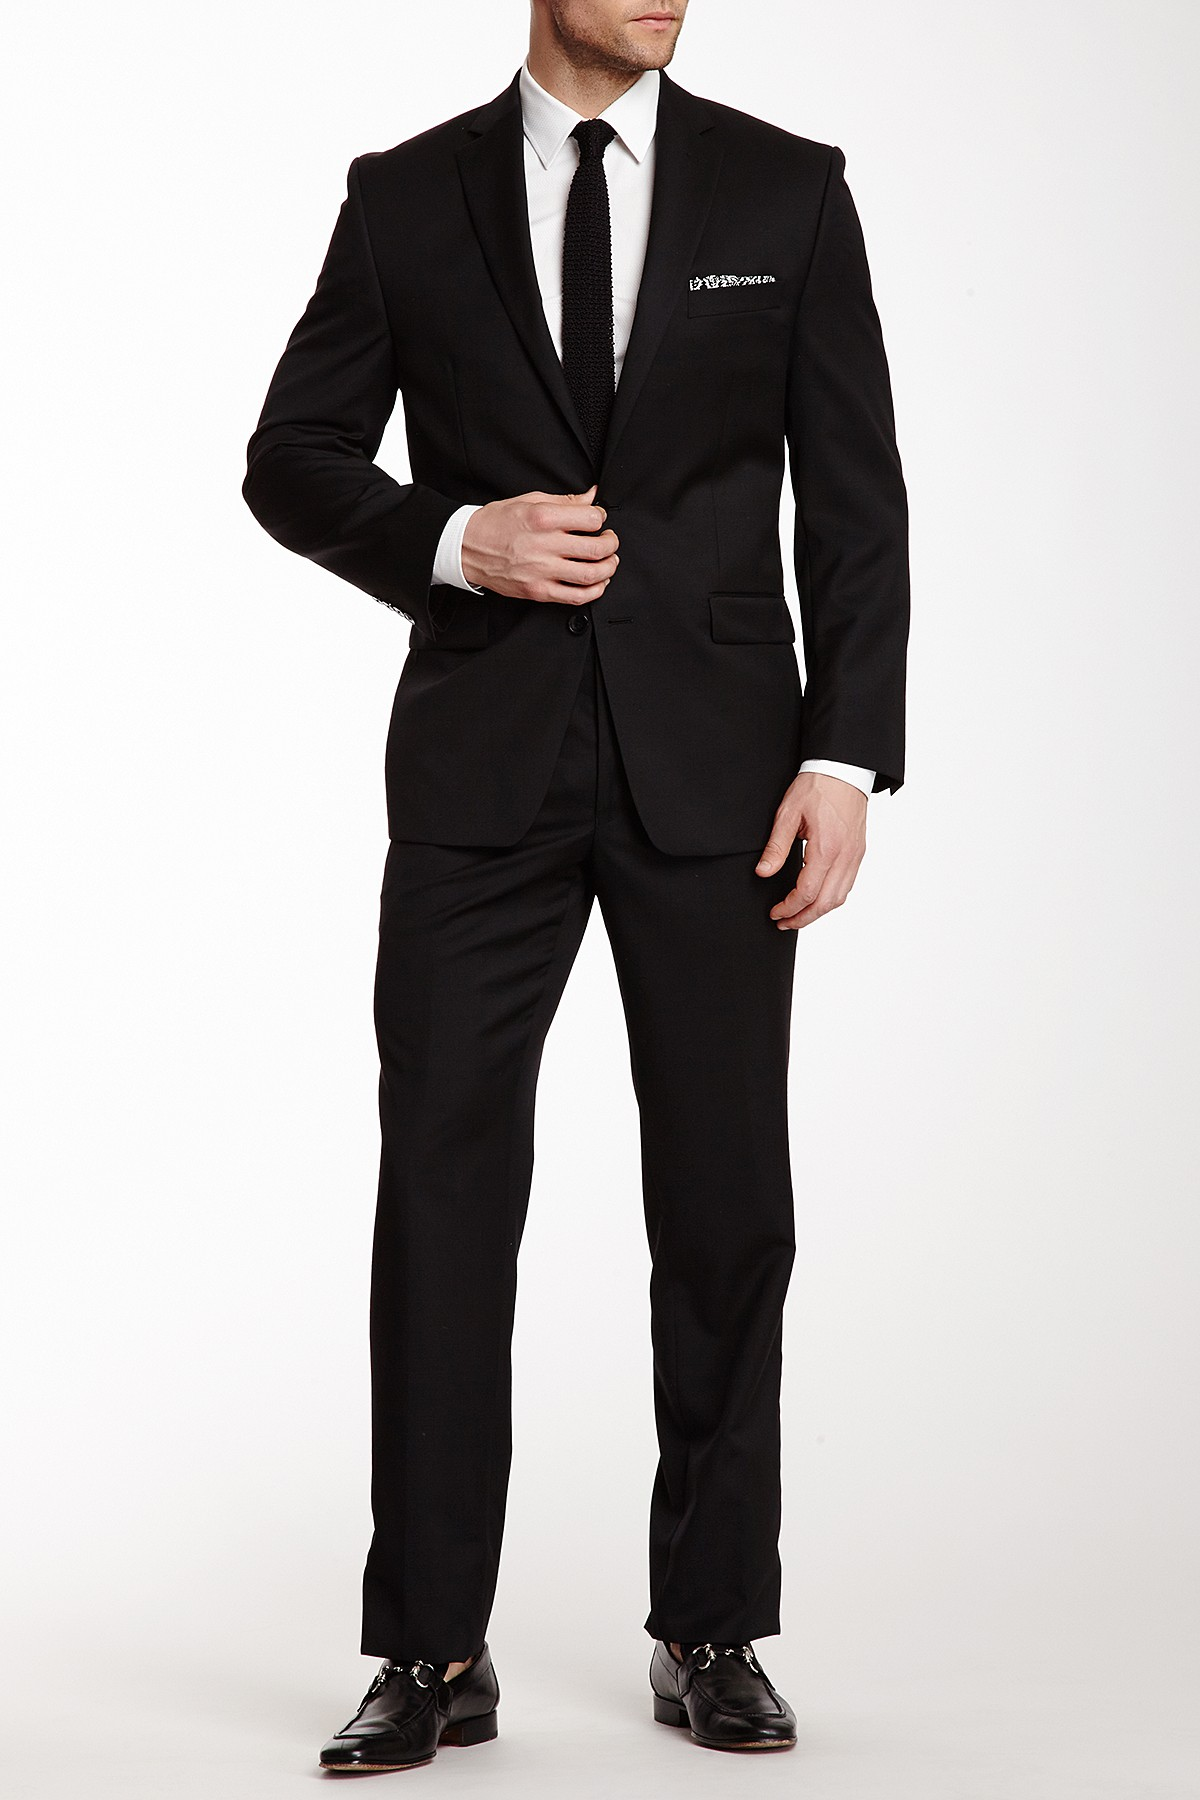 Calvin Klein suits image of calvin klein black solid two button notch lapel wool suit MLGCVLK